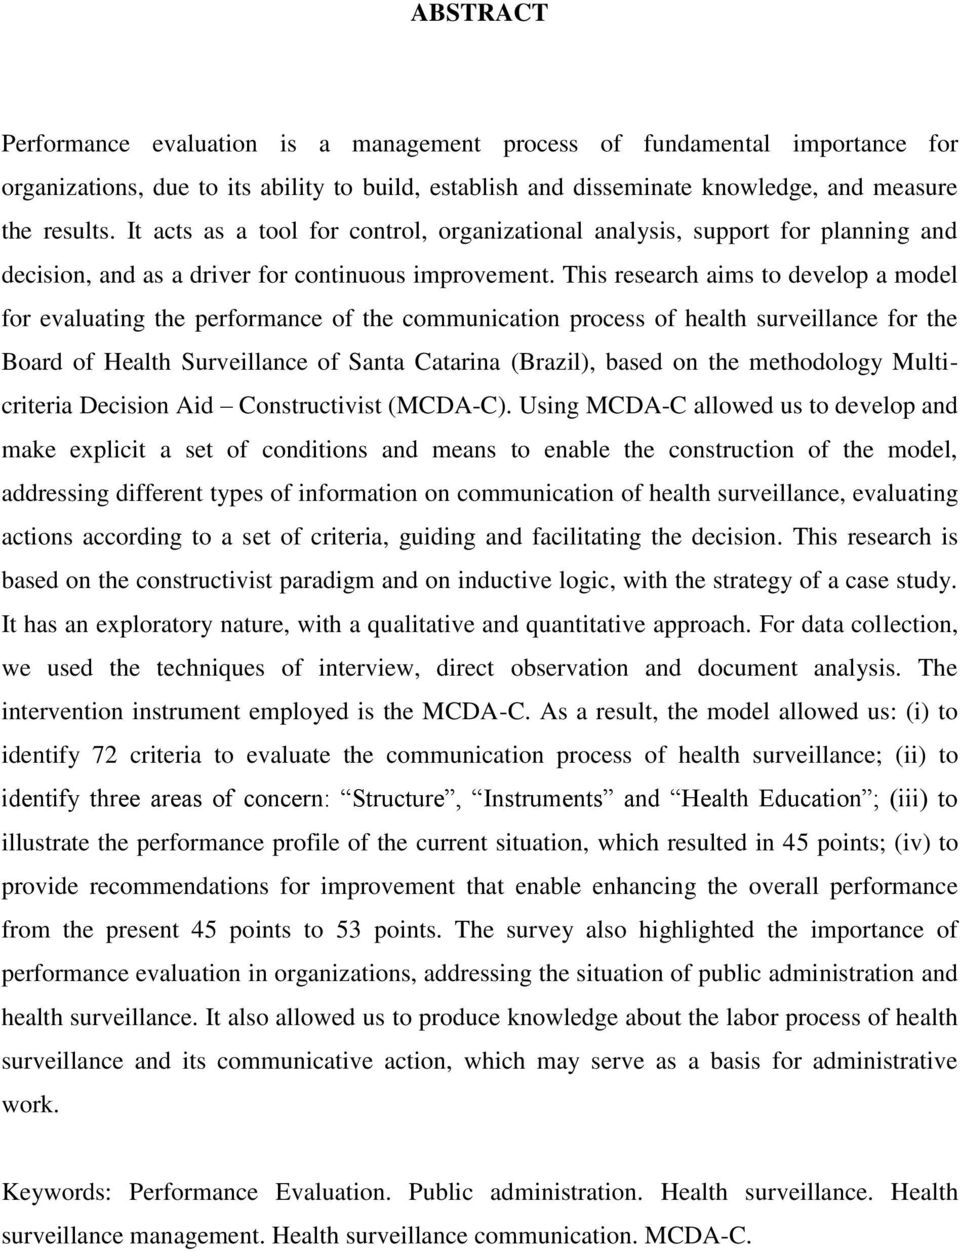 This research aims to develop a model for evaluating the performance of the communication process of health surveillance for the Board of Health Surveillance of Santa Catarina (Brazil), based on the